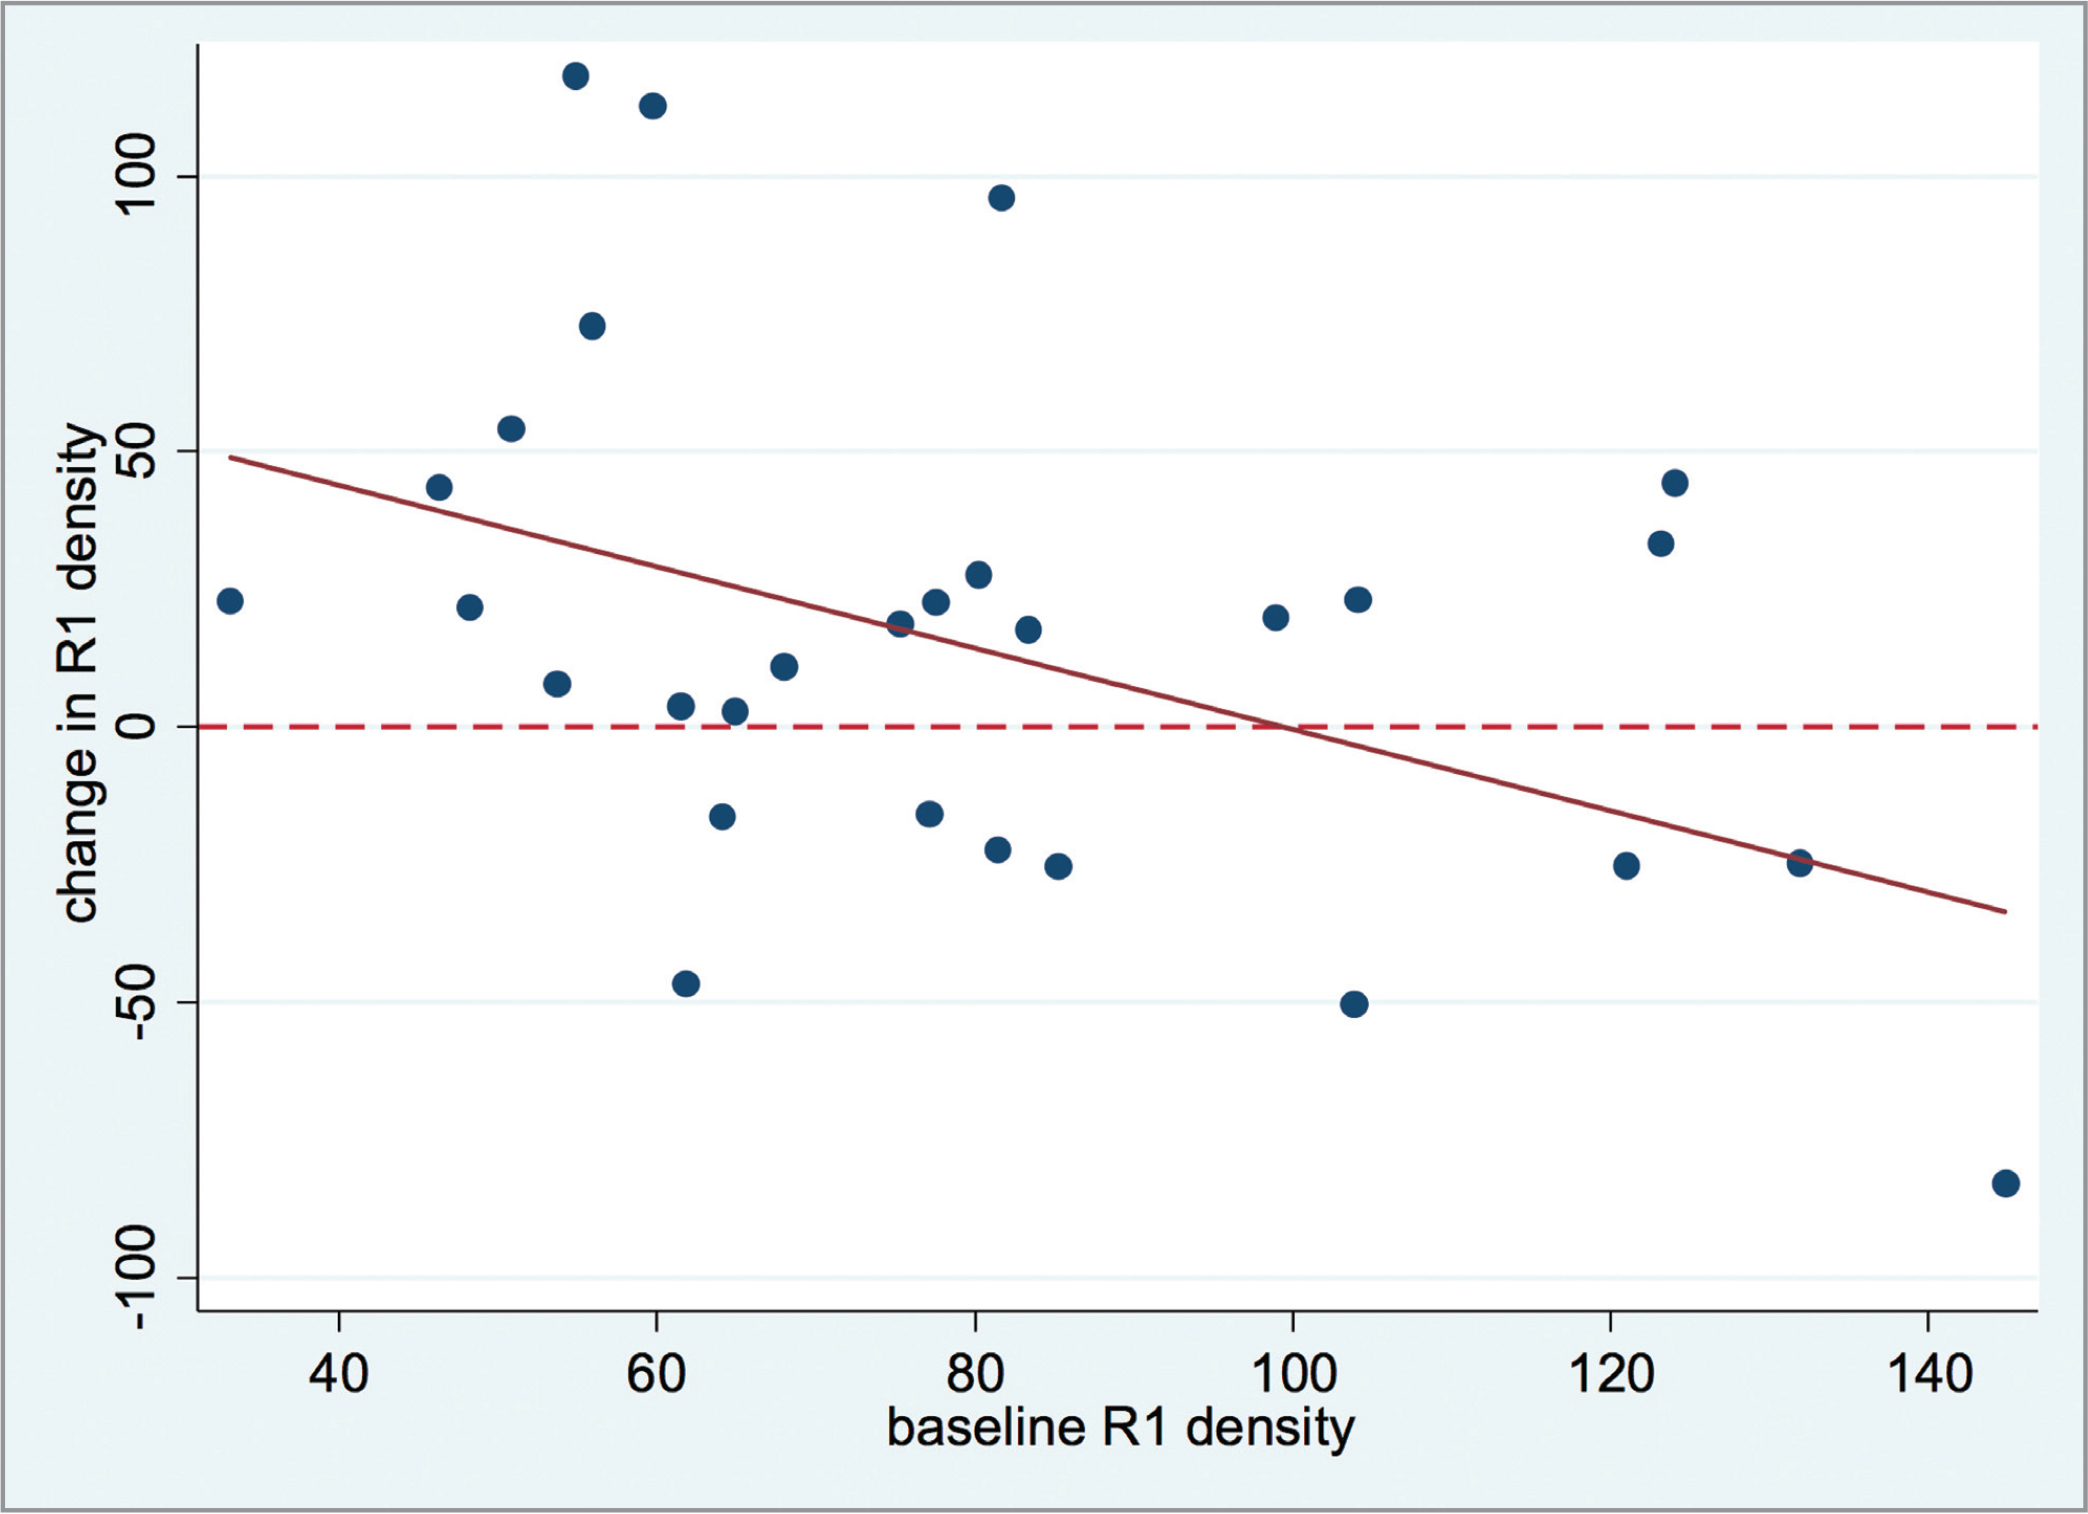 Change in multifocal electroretinography in the foveal area (RING 1 [R1]) density versus baseline.